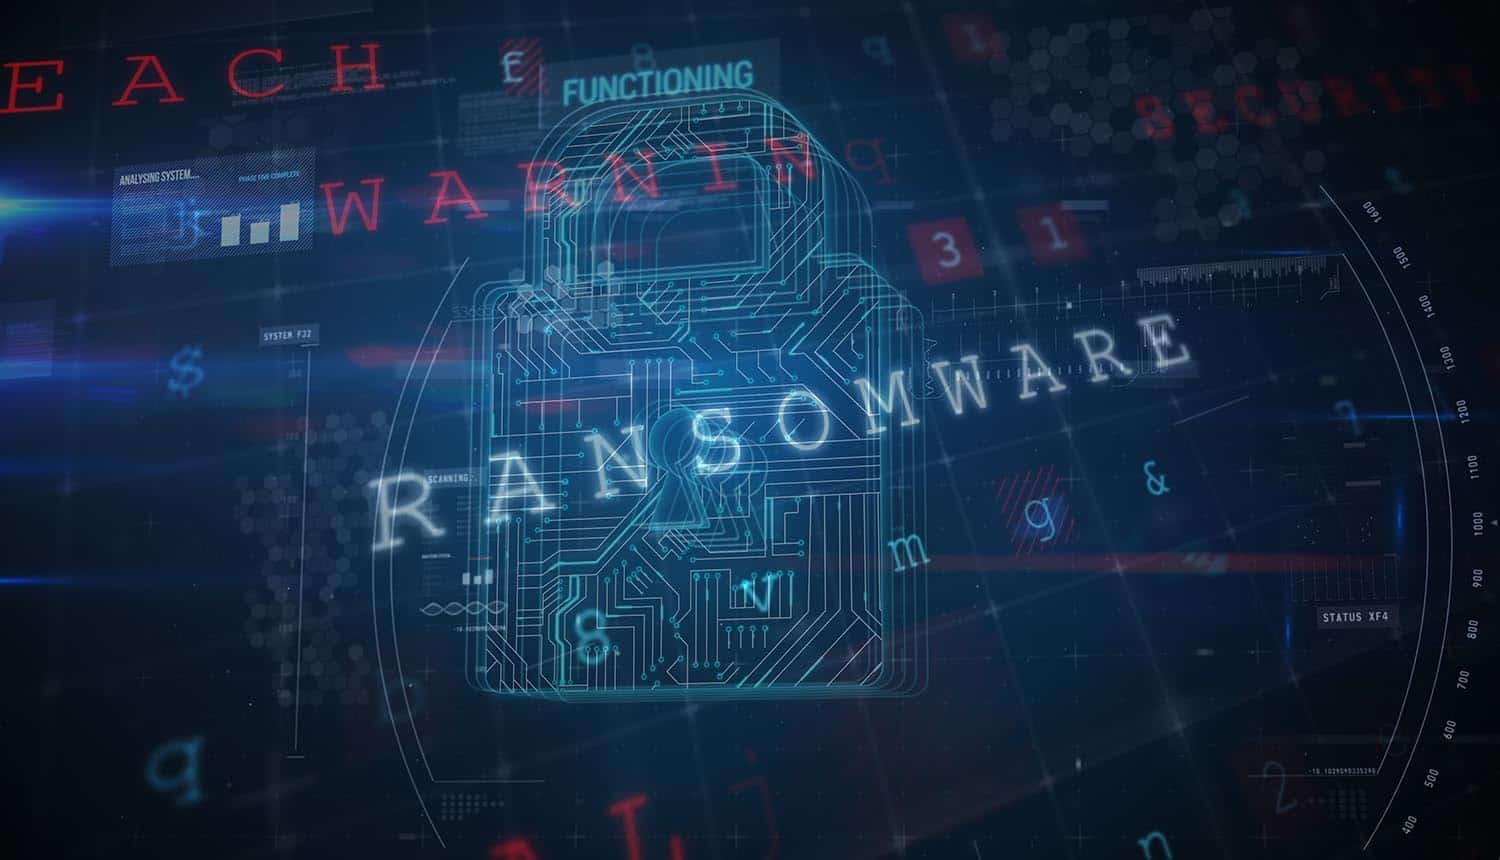 View of a cyber security lock showing REvil ransomware